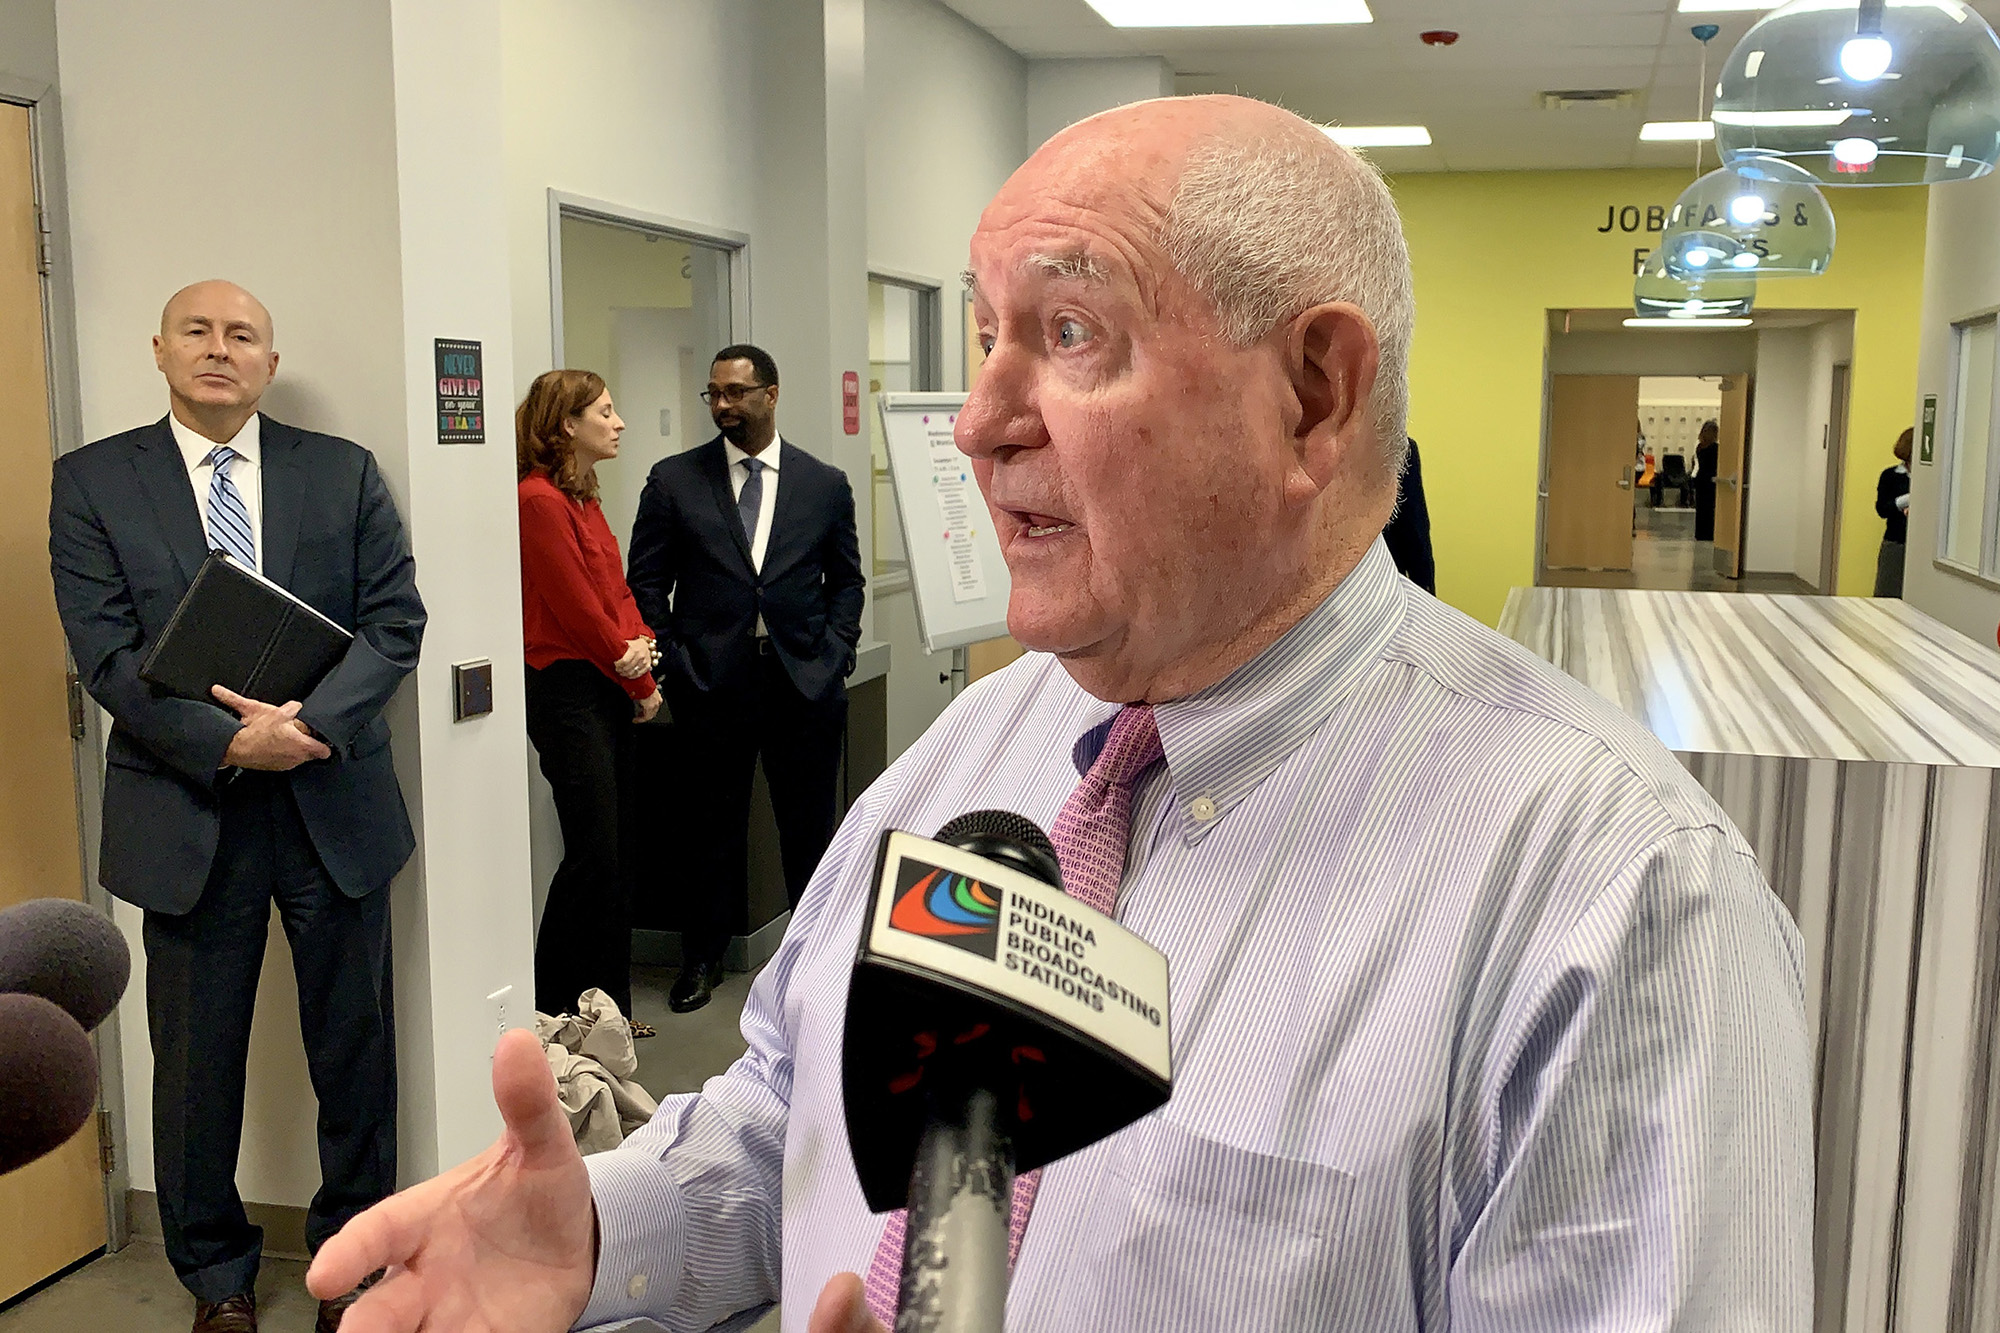 U.S. Agriculture Secretary Sonny Perdue, whose department oversees SNAP benefits, or food stamps, speaks with the media at a WorkOne center in Indianapolis.